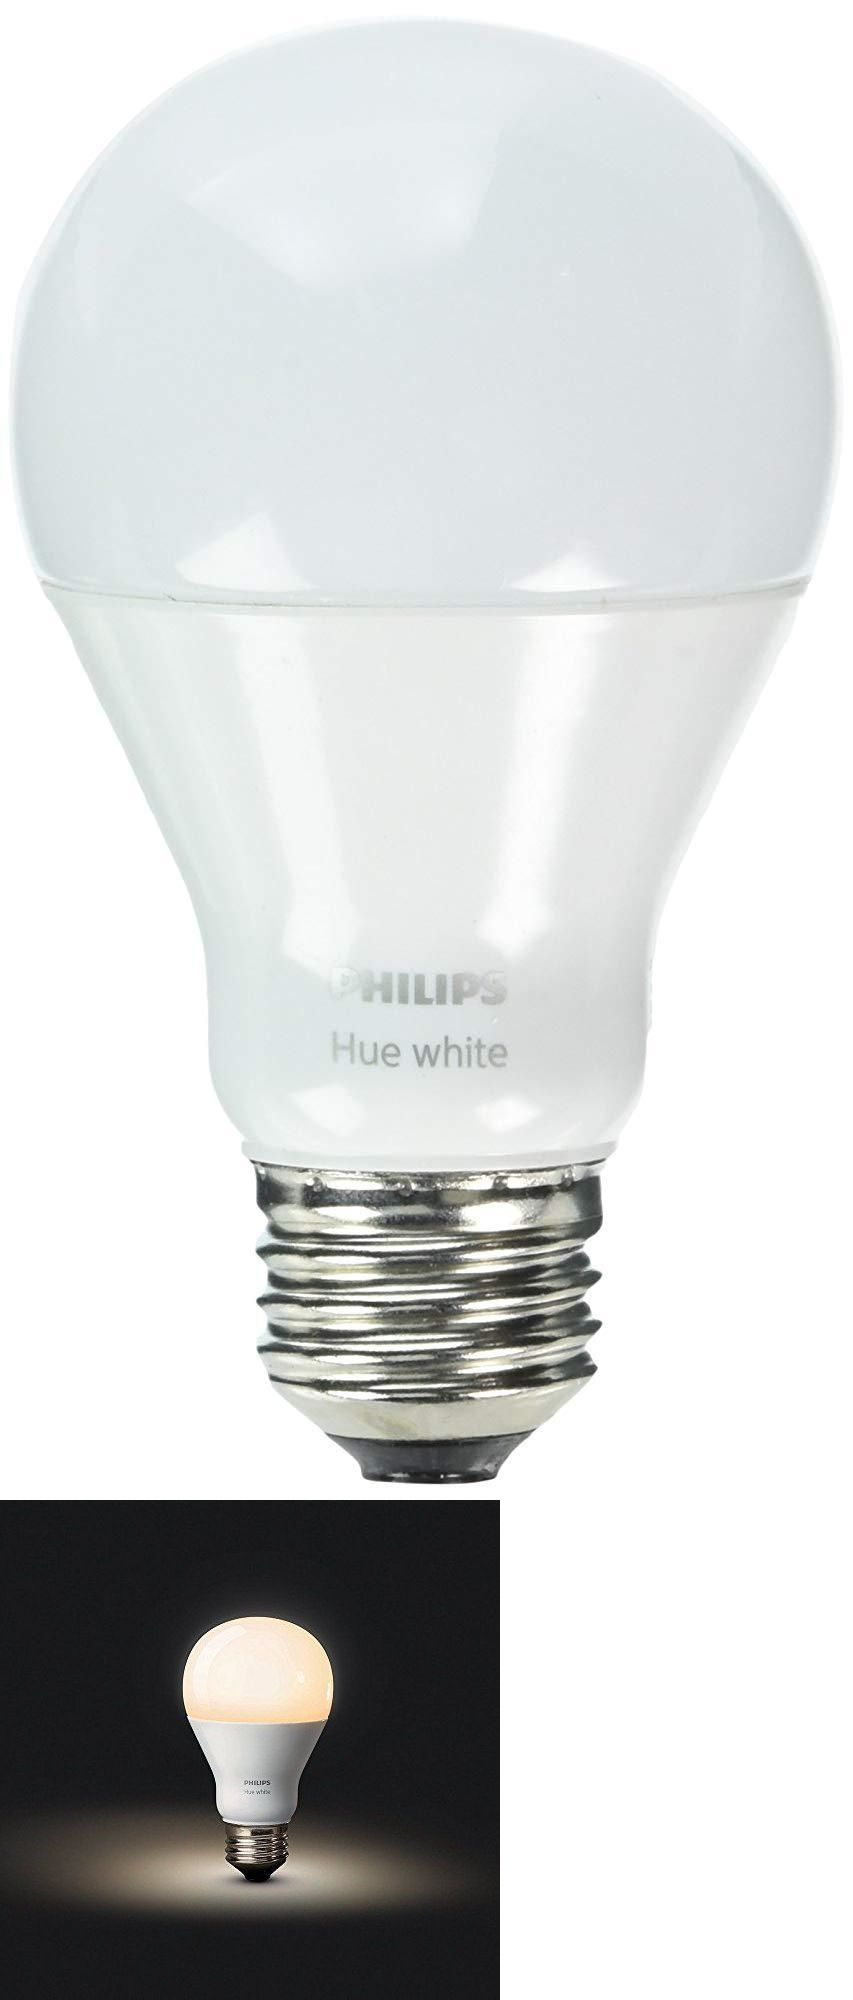 Buy Lightbulbs Light Bulbs 20706 Philips Hue White A19 Single Led Bulb Works